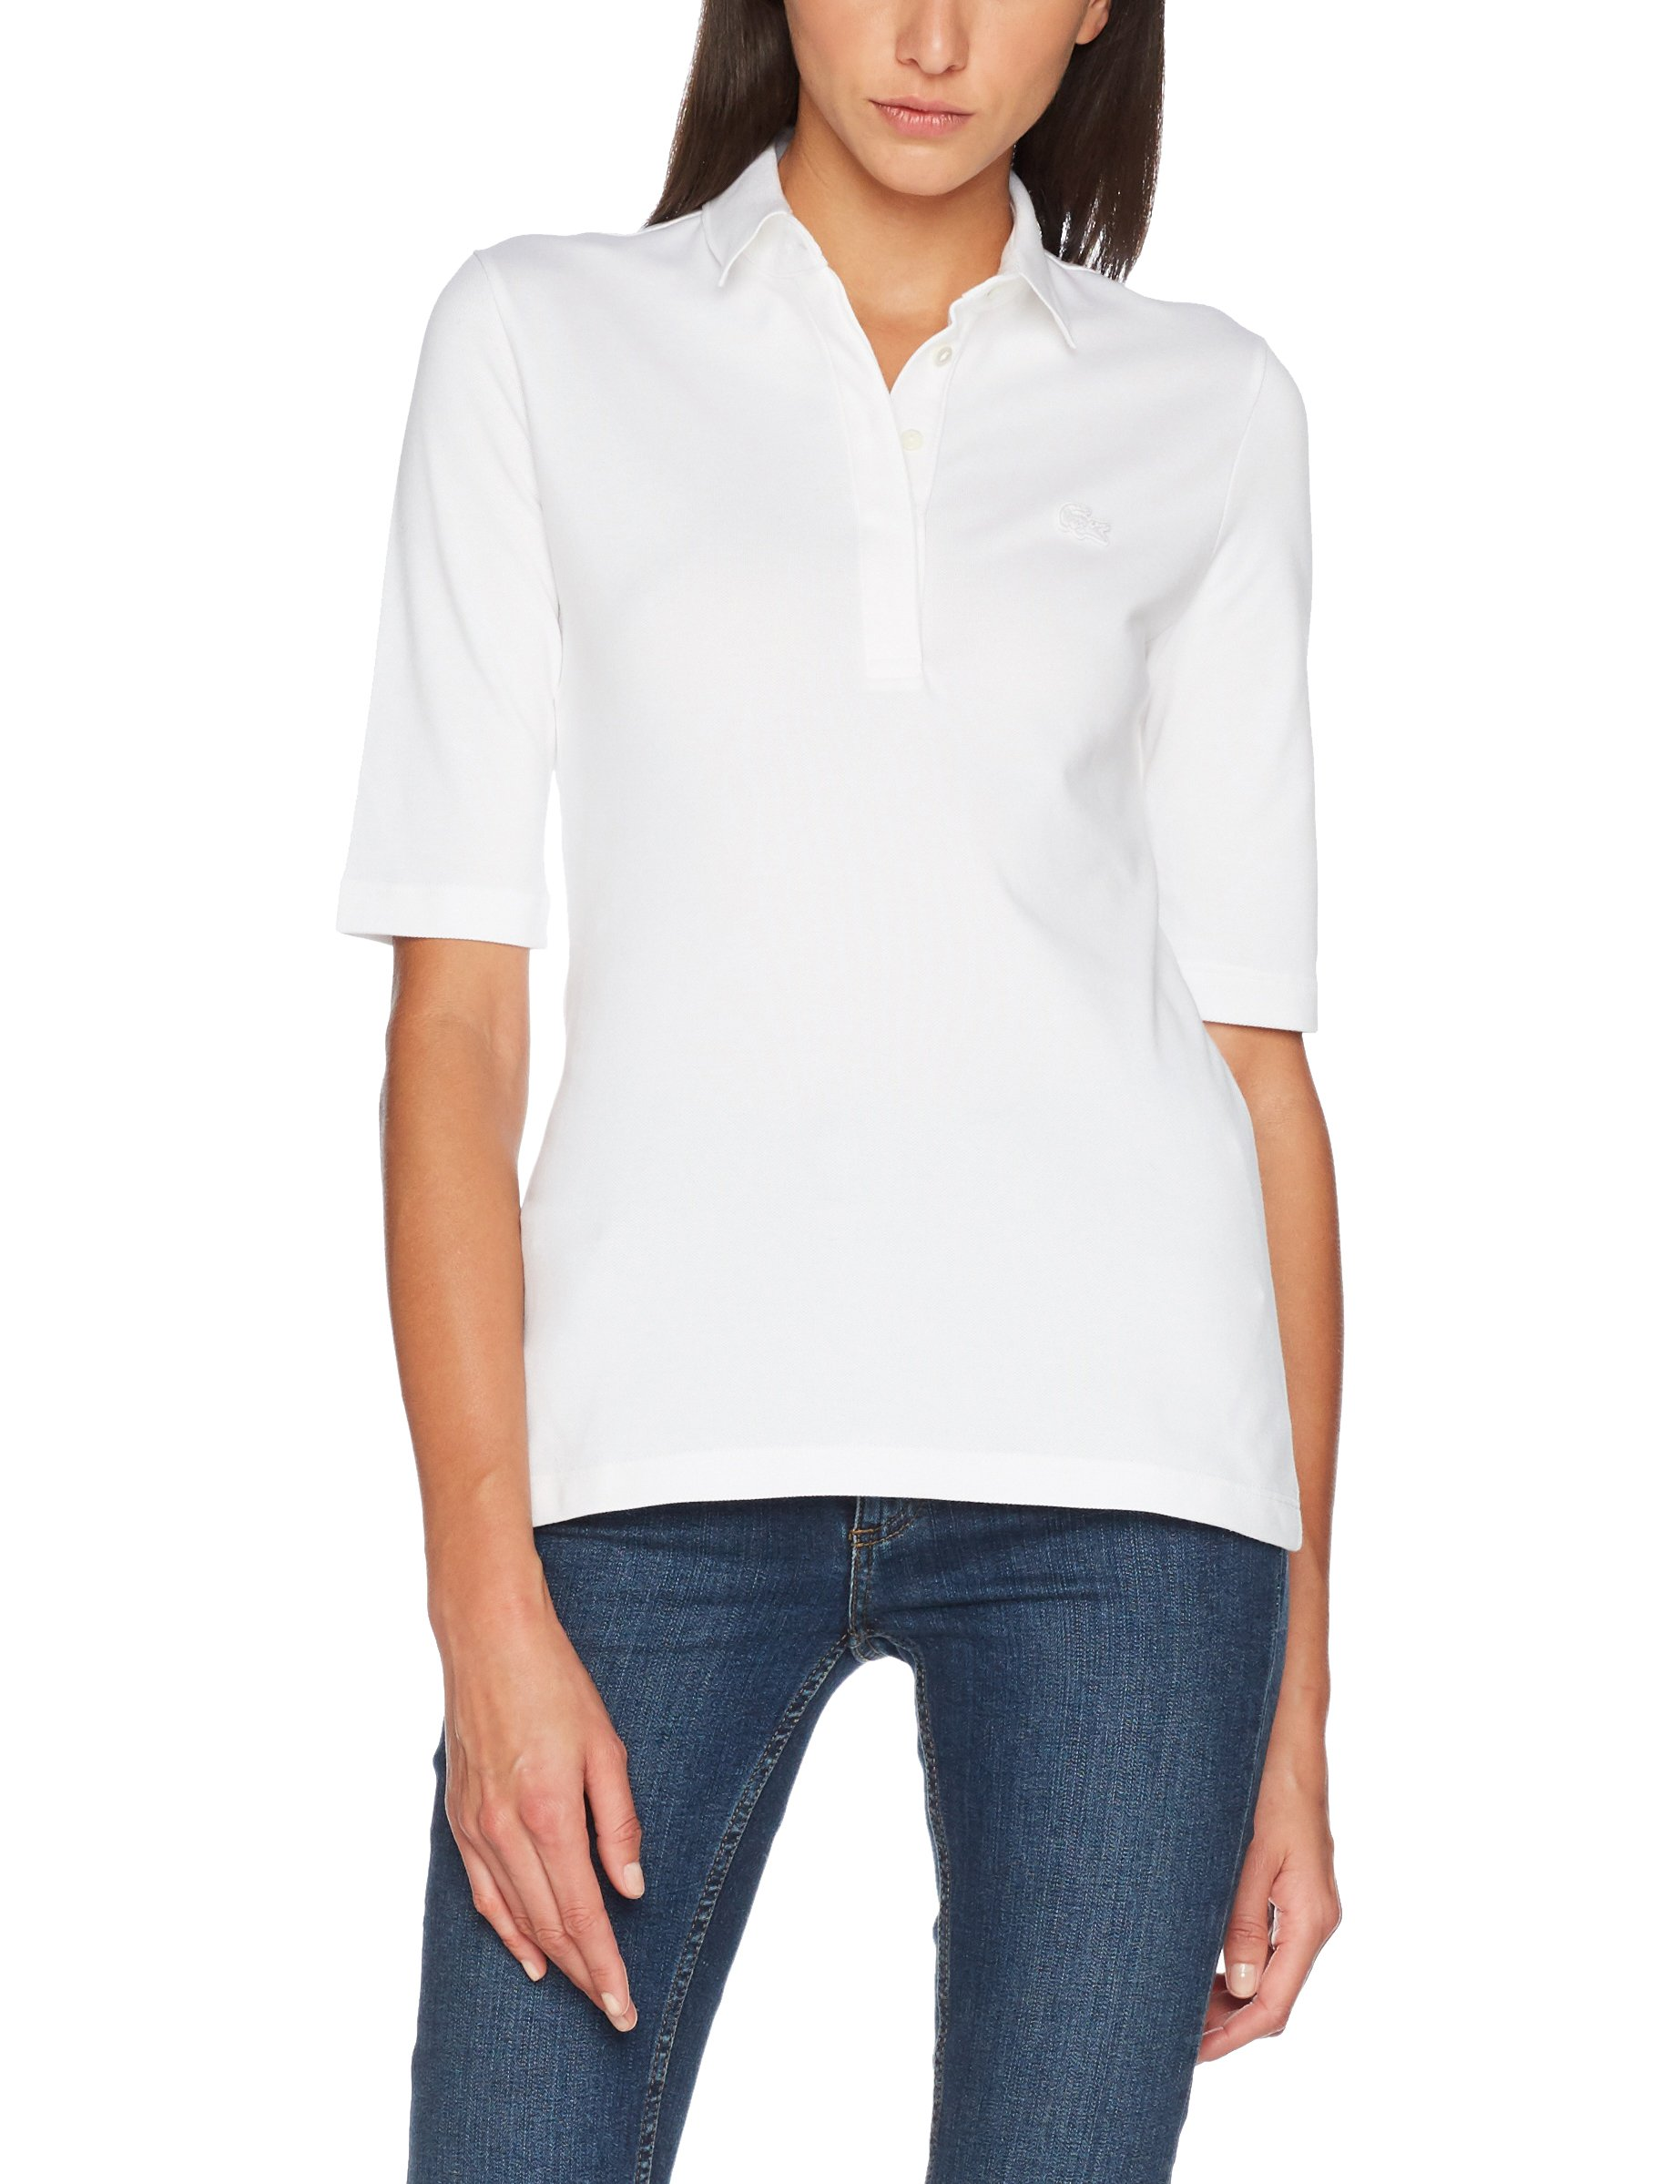 Lacoste Pf7844 Poloblanctaille Fabricant44Femme Pf7844 Lacoste xrCBeEQoWd